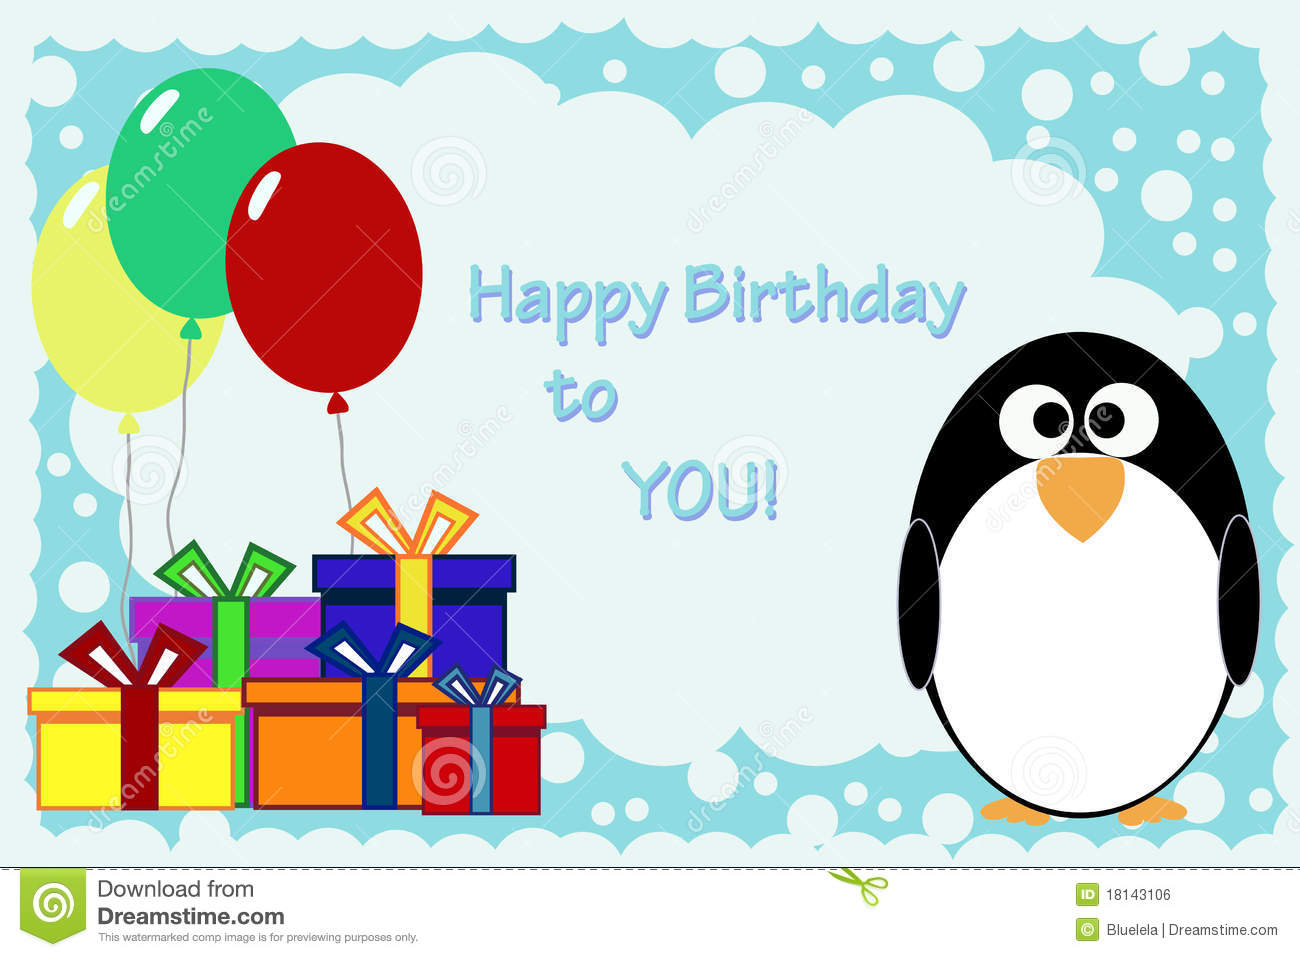 penguin birthday card royalty free stock image  image, Birthday card